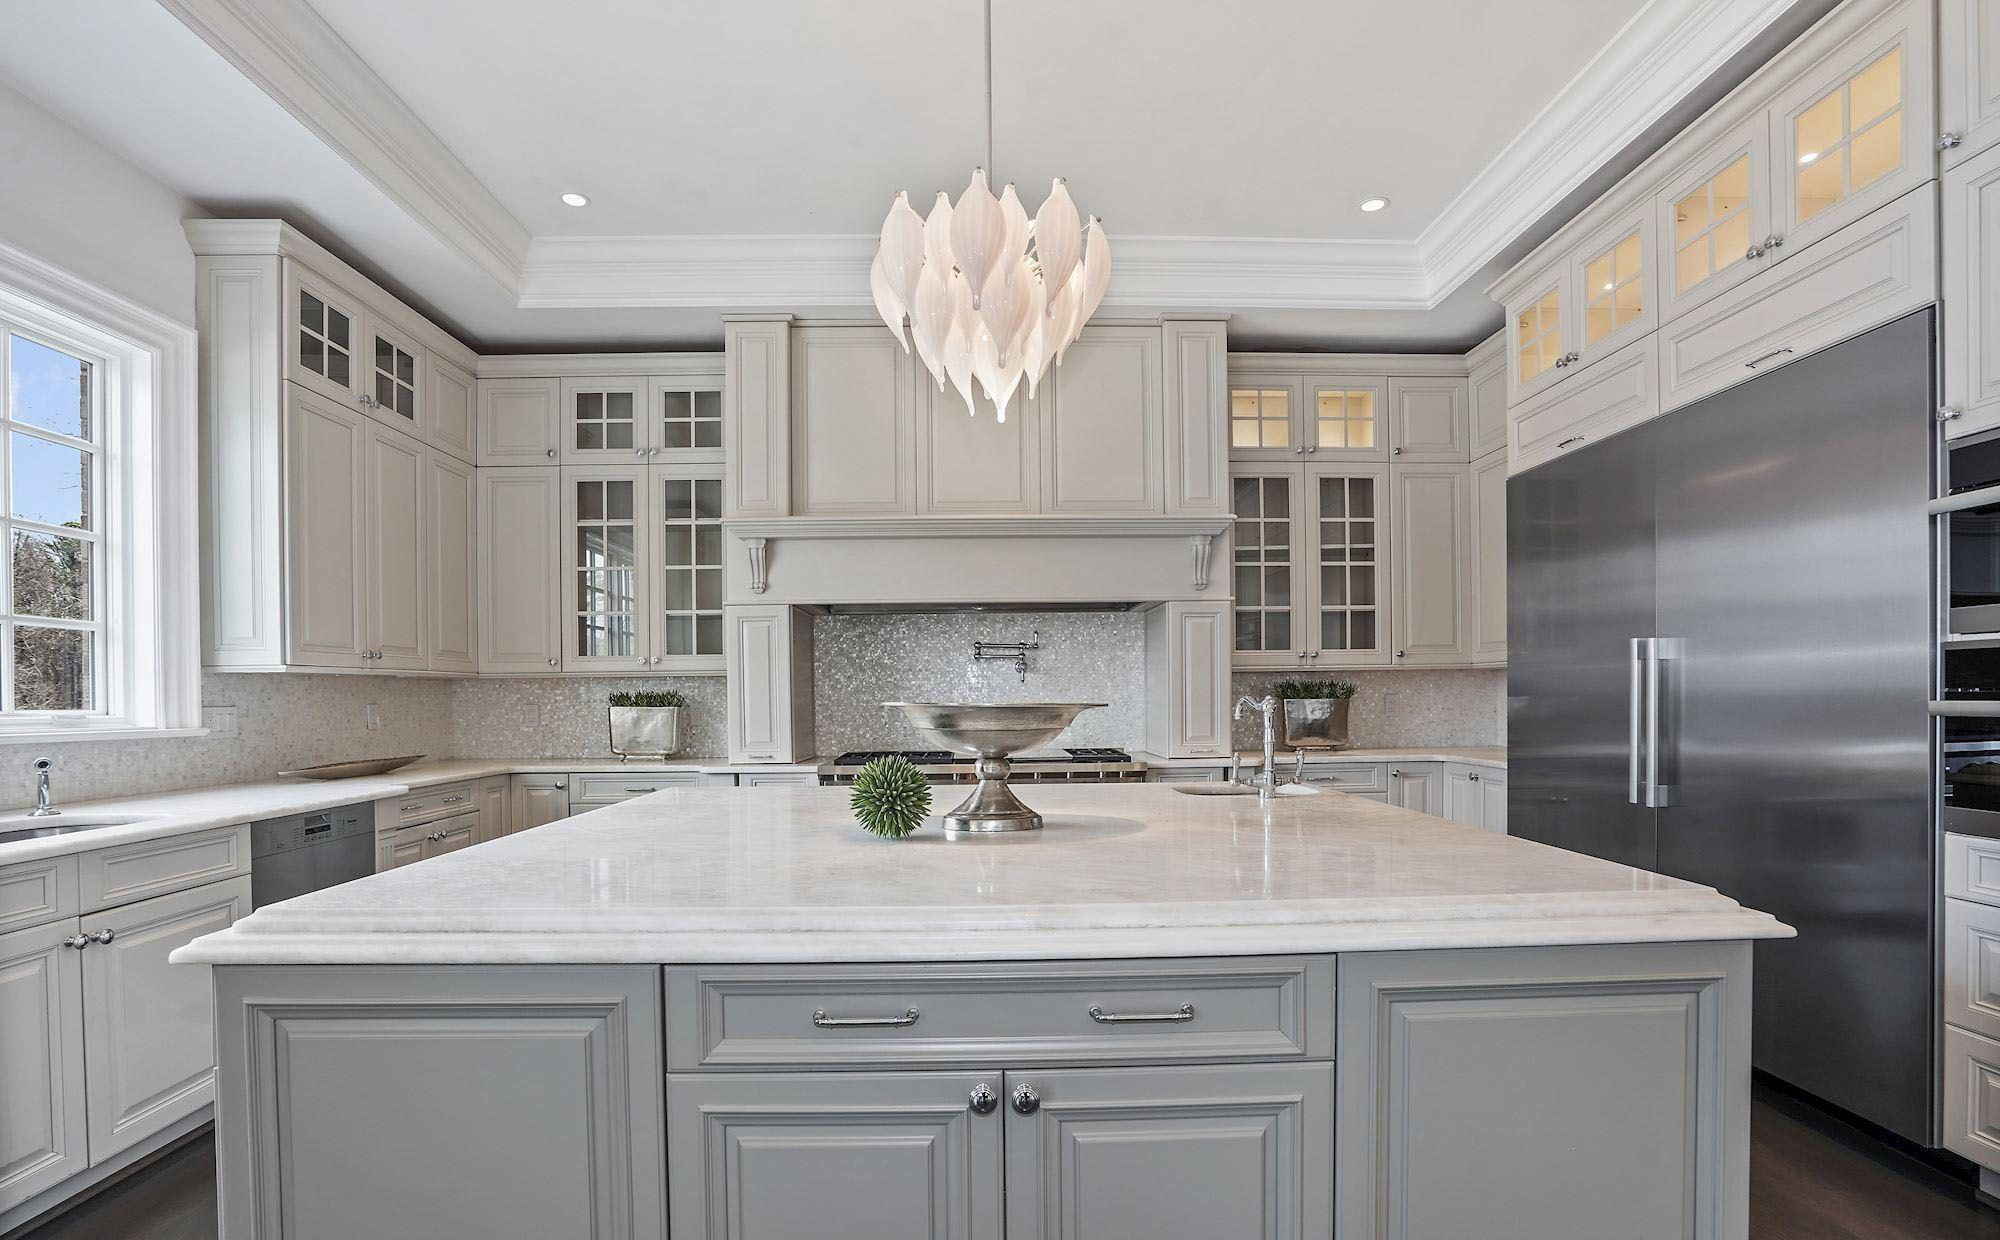 Cream kitchen cabinets with light gray island and marble countertops. Sparkly tile backsplash.